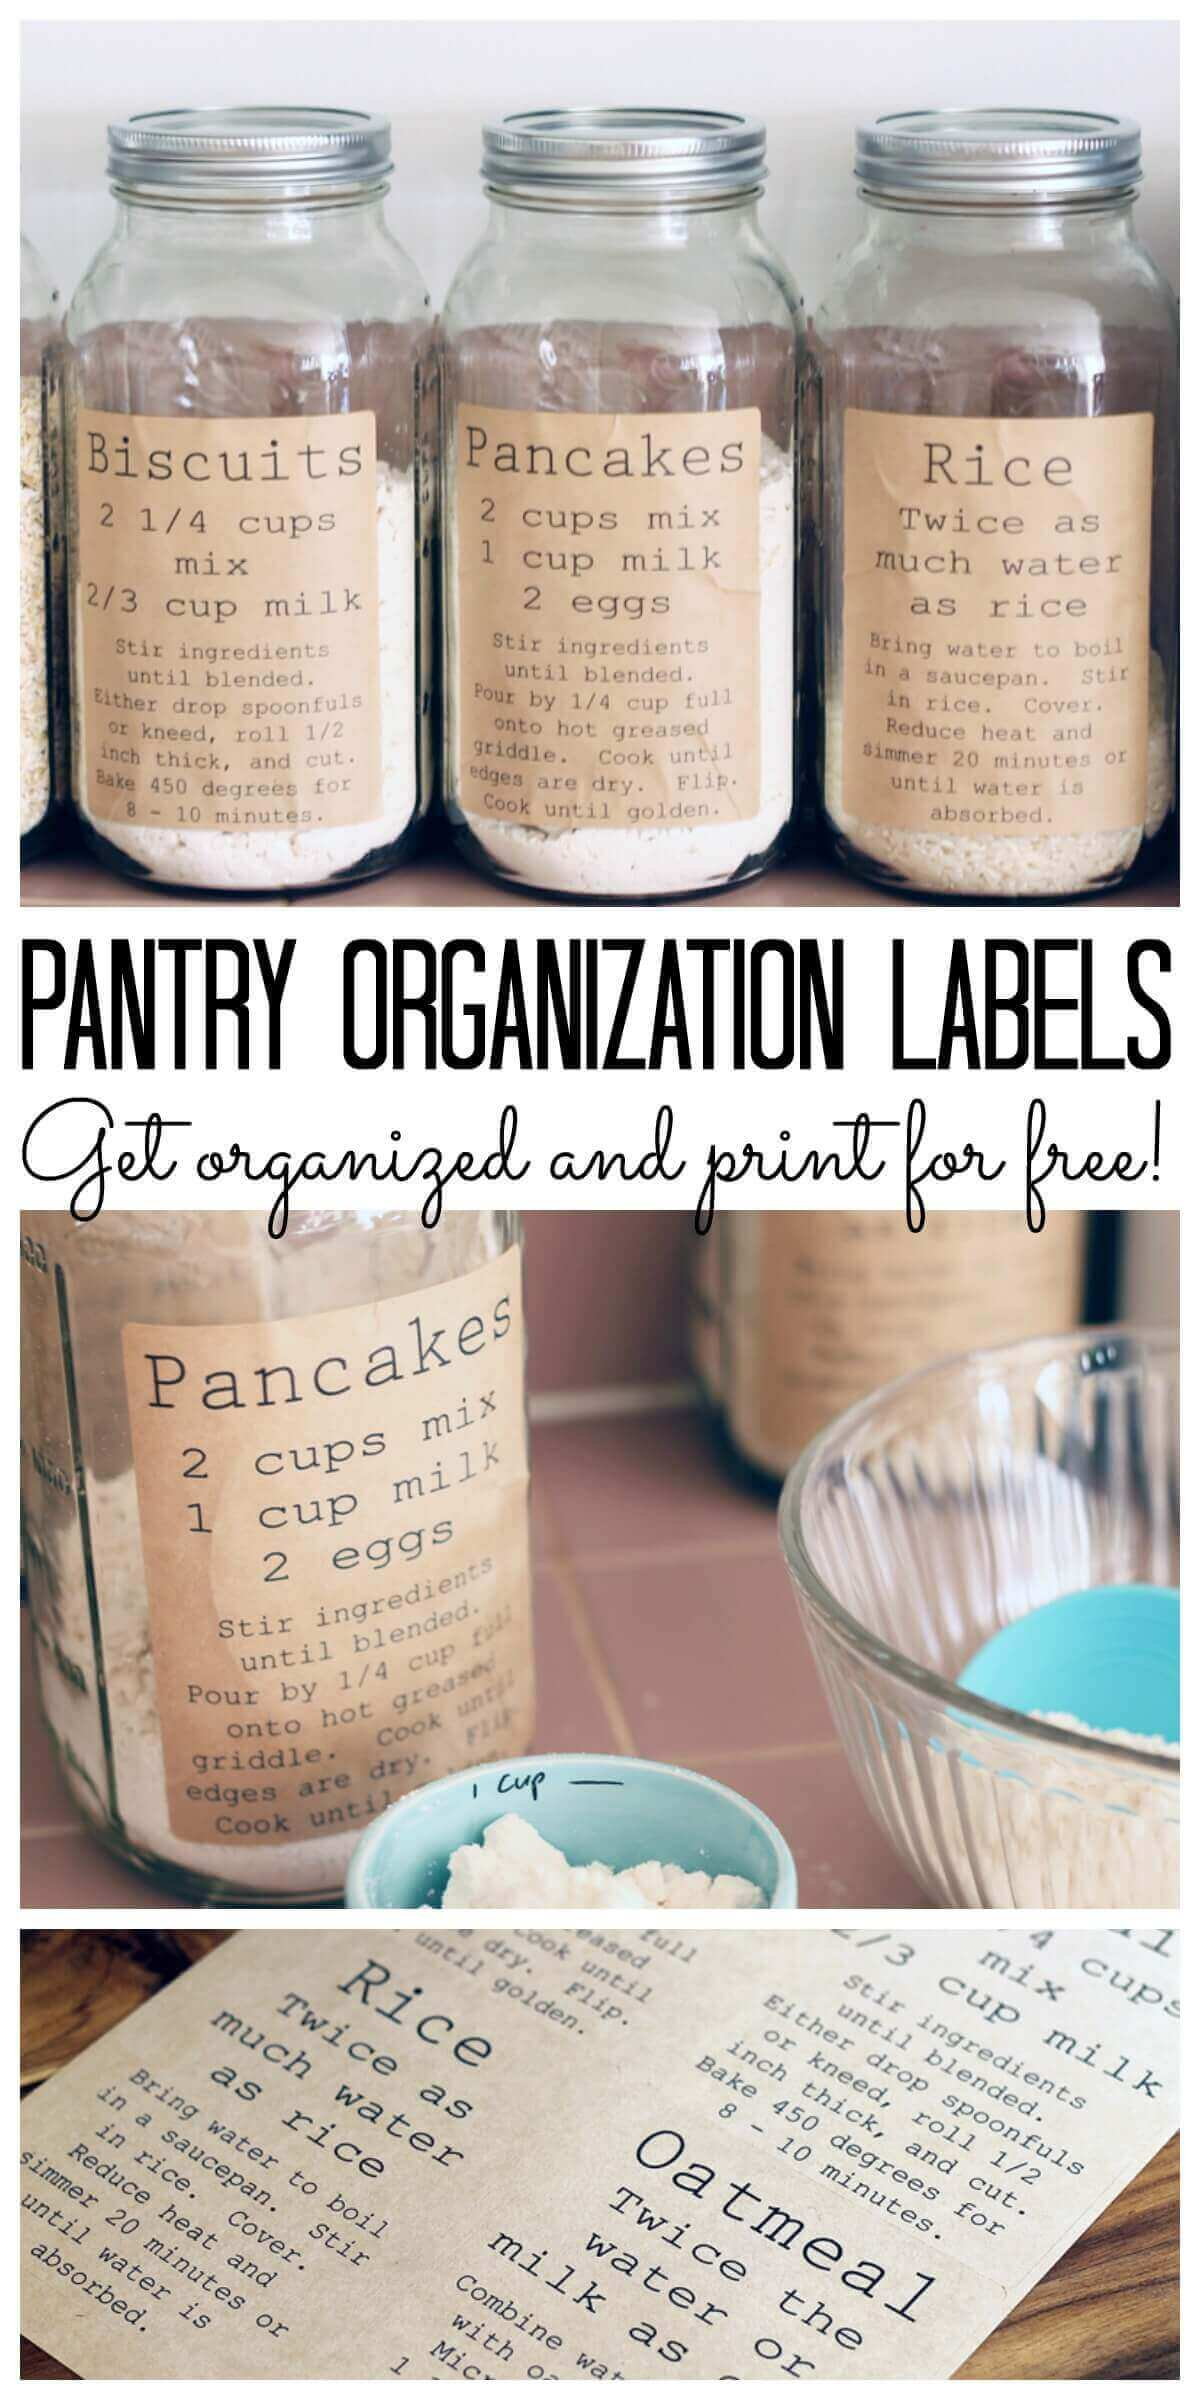 16 org tips - pantry-organization-labels-collage 06